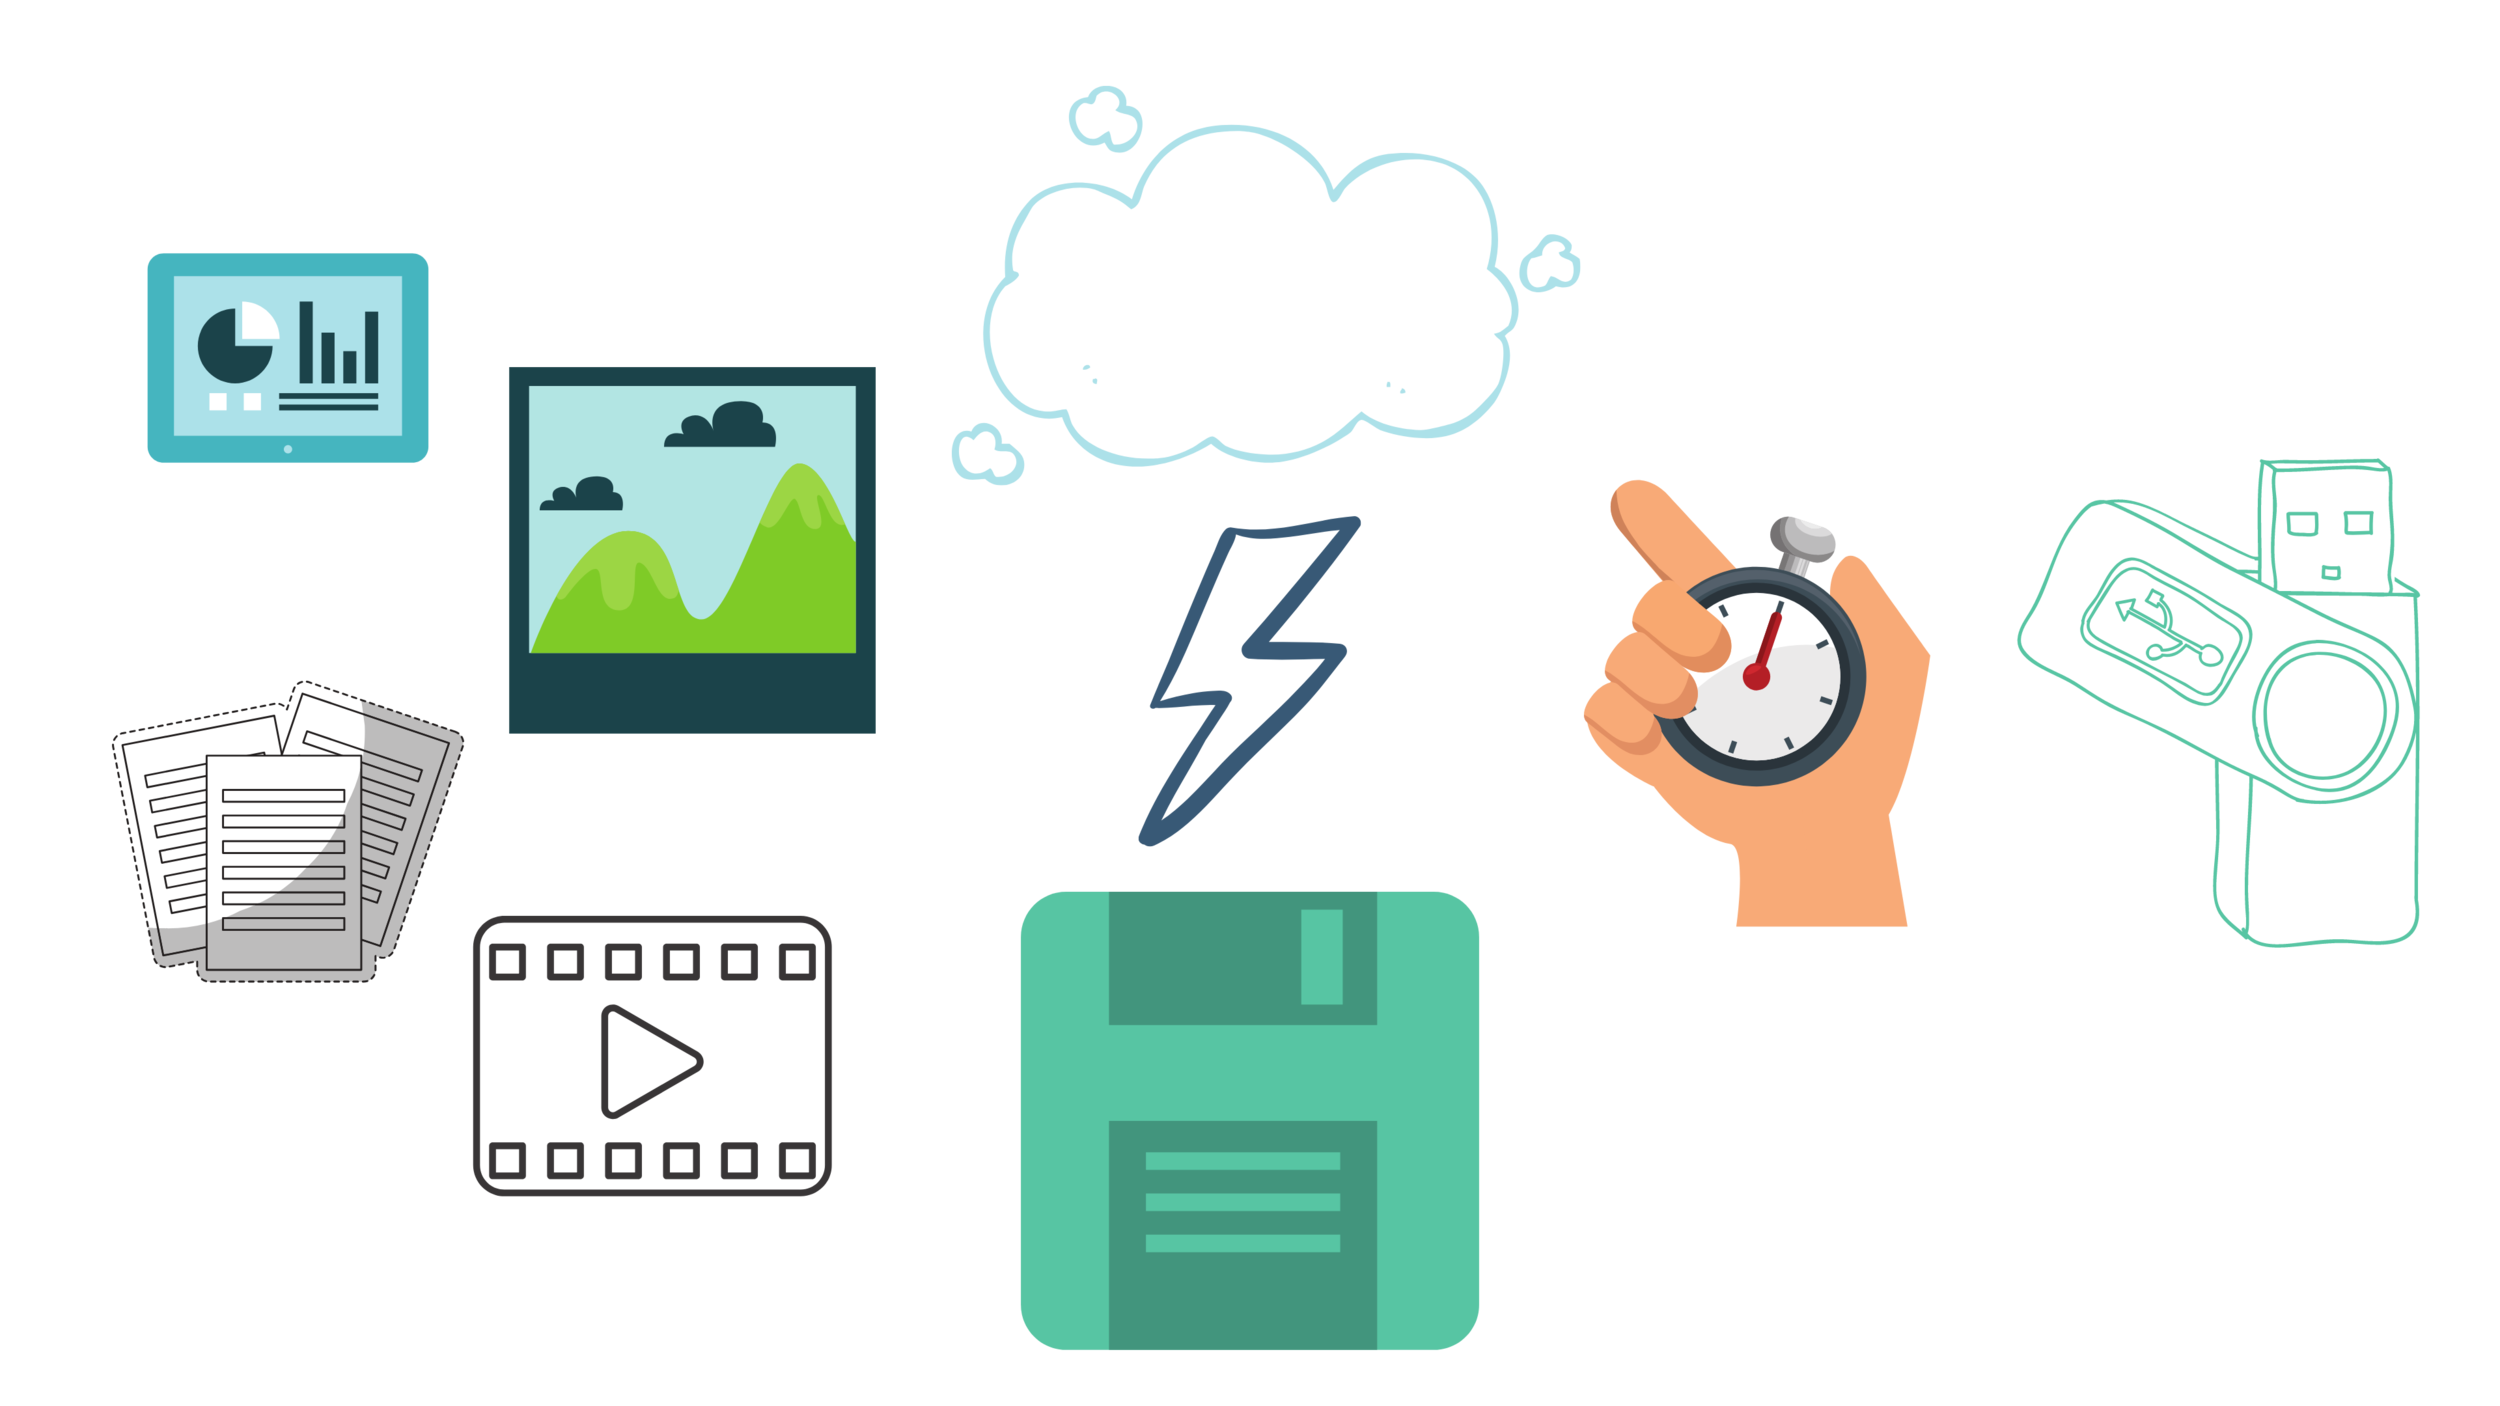 Store & Share - Store and share data to the cloud faster than you can save it to a flash drive. Access anything everywhere.